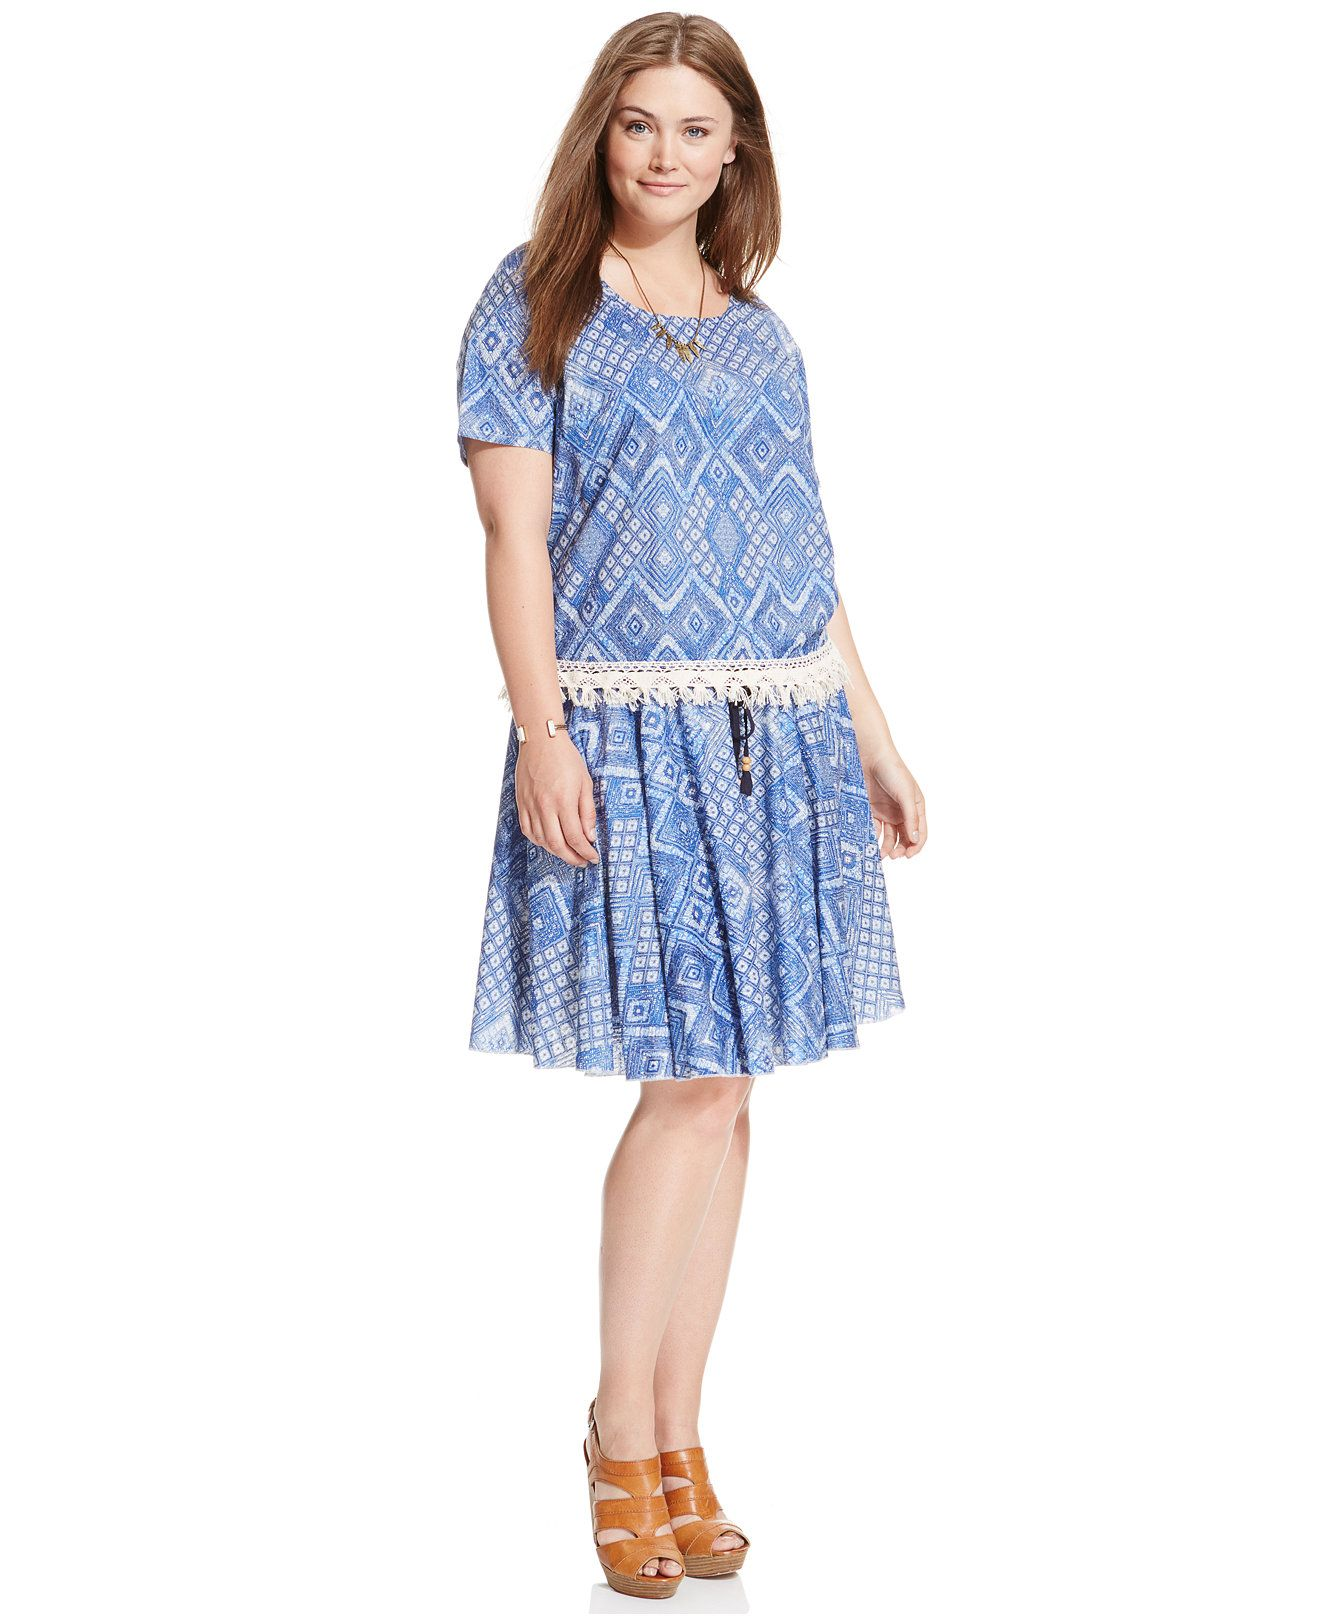 0bc29f450a2 Stevie and Lindsay Plus Size Short-Sleeve Printed Top   Geo-Print Pleated  Skirt